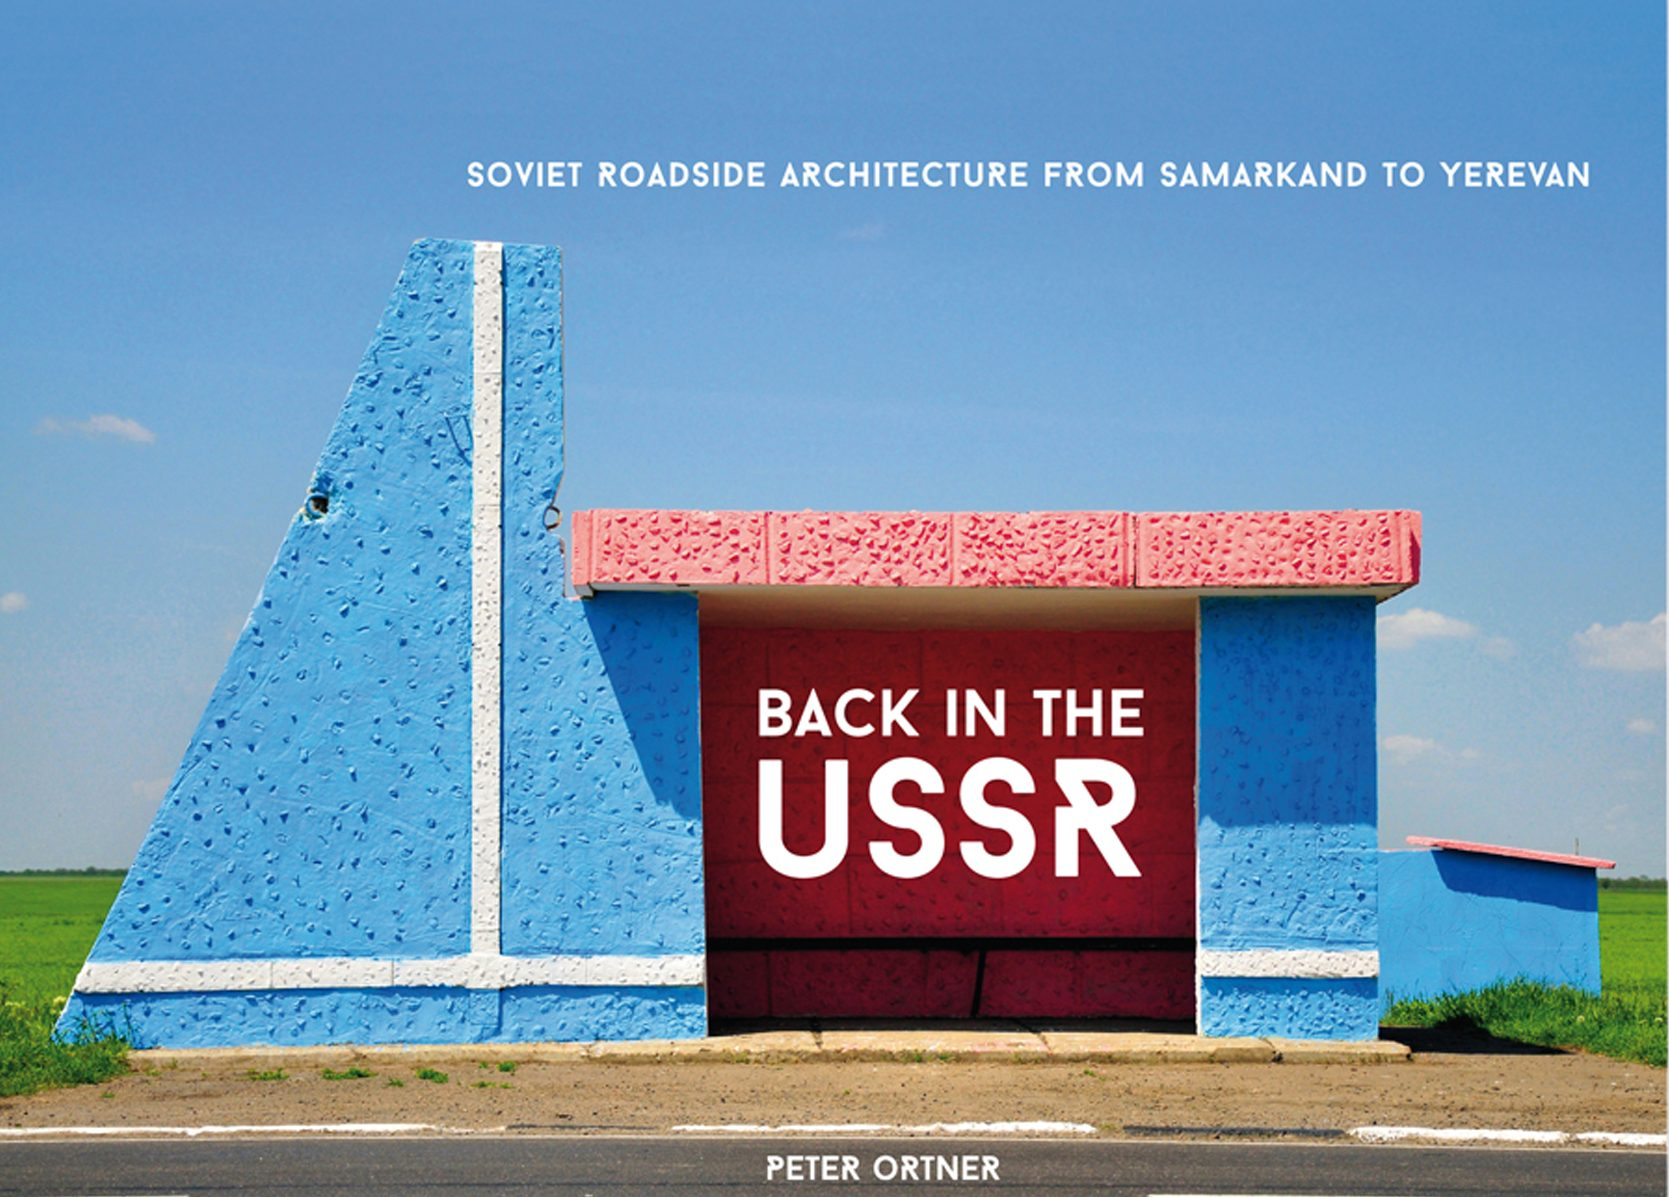 Competition: win a book documenting the unusual bus stops of the former Soviet Union